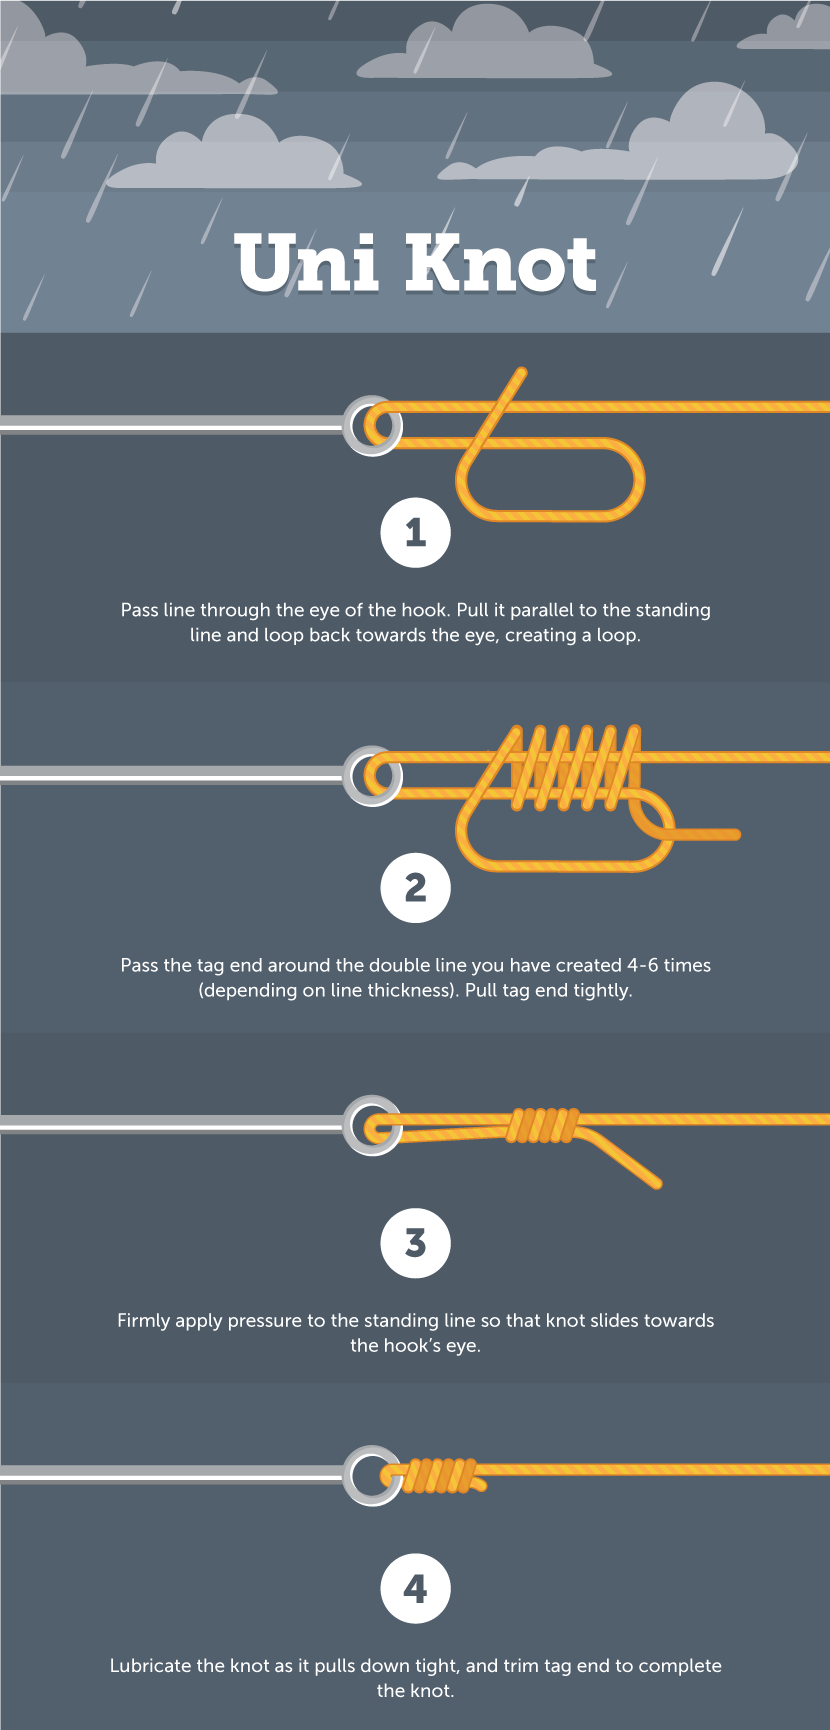 Uni Knot - Fishing Knot Encyclopedia